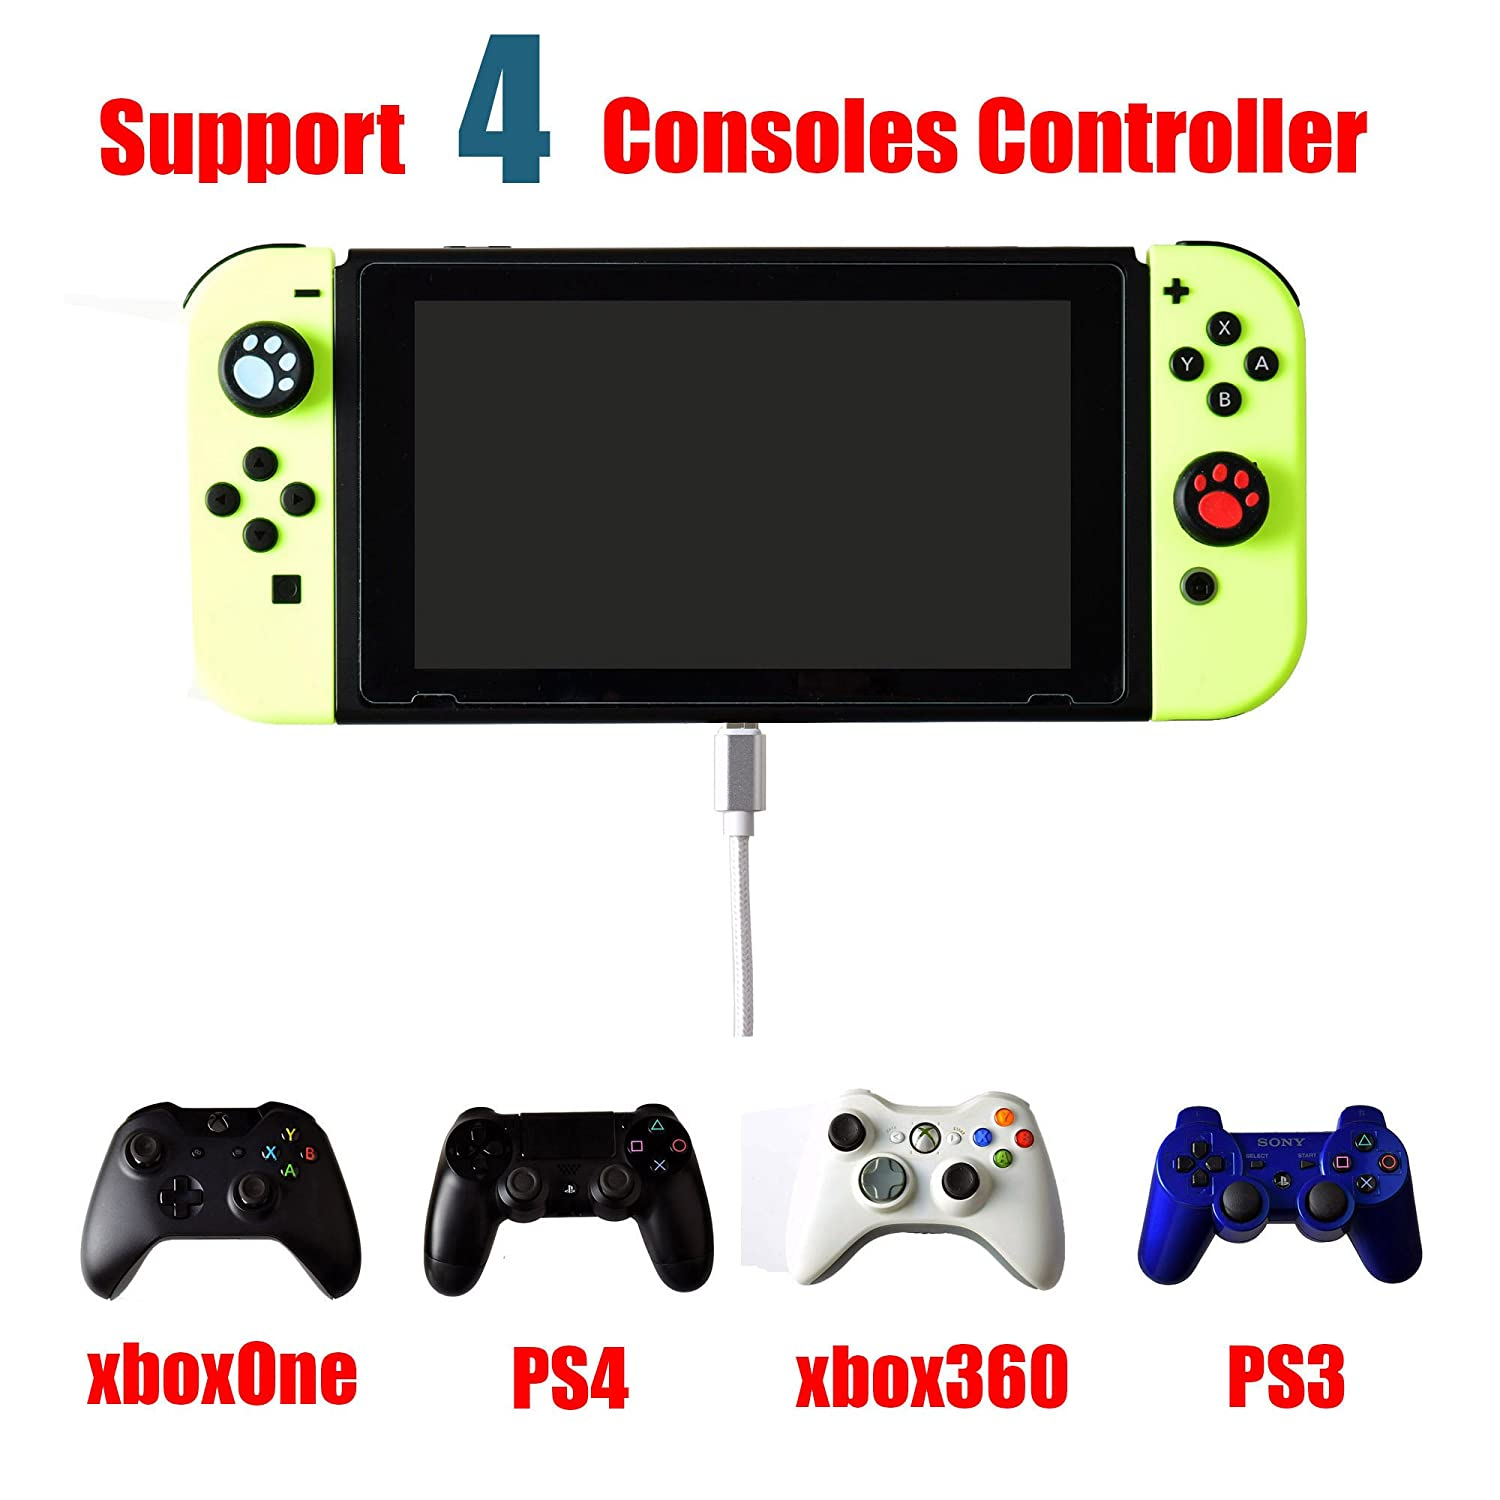 Mcbazel COOV N100 PS4 PS3 Xbox One Xbox 360 Gaming Controller to Switch  Converter with OTG Adapter Cable